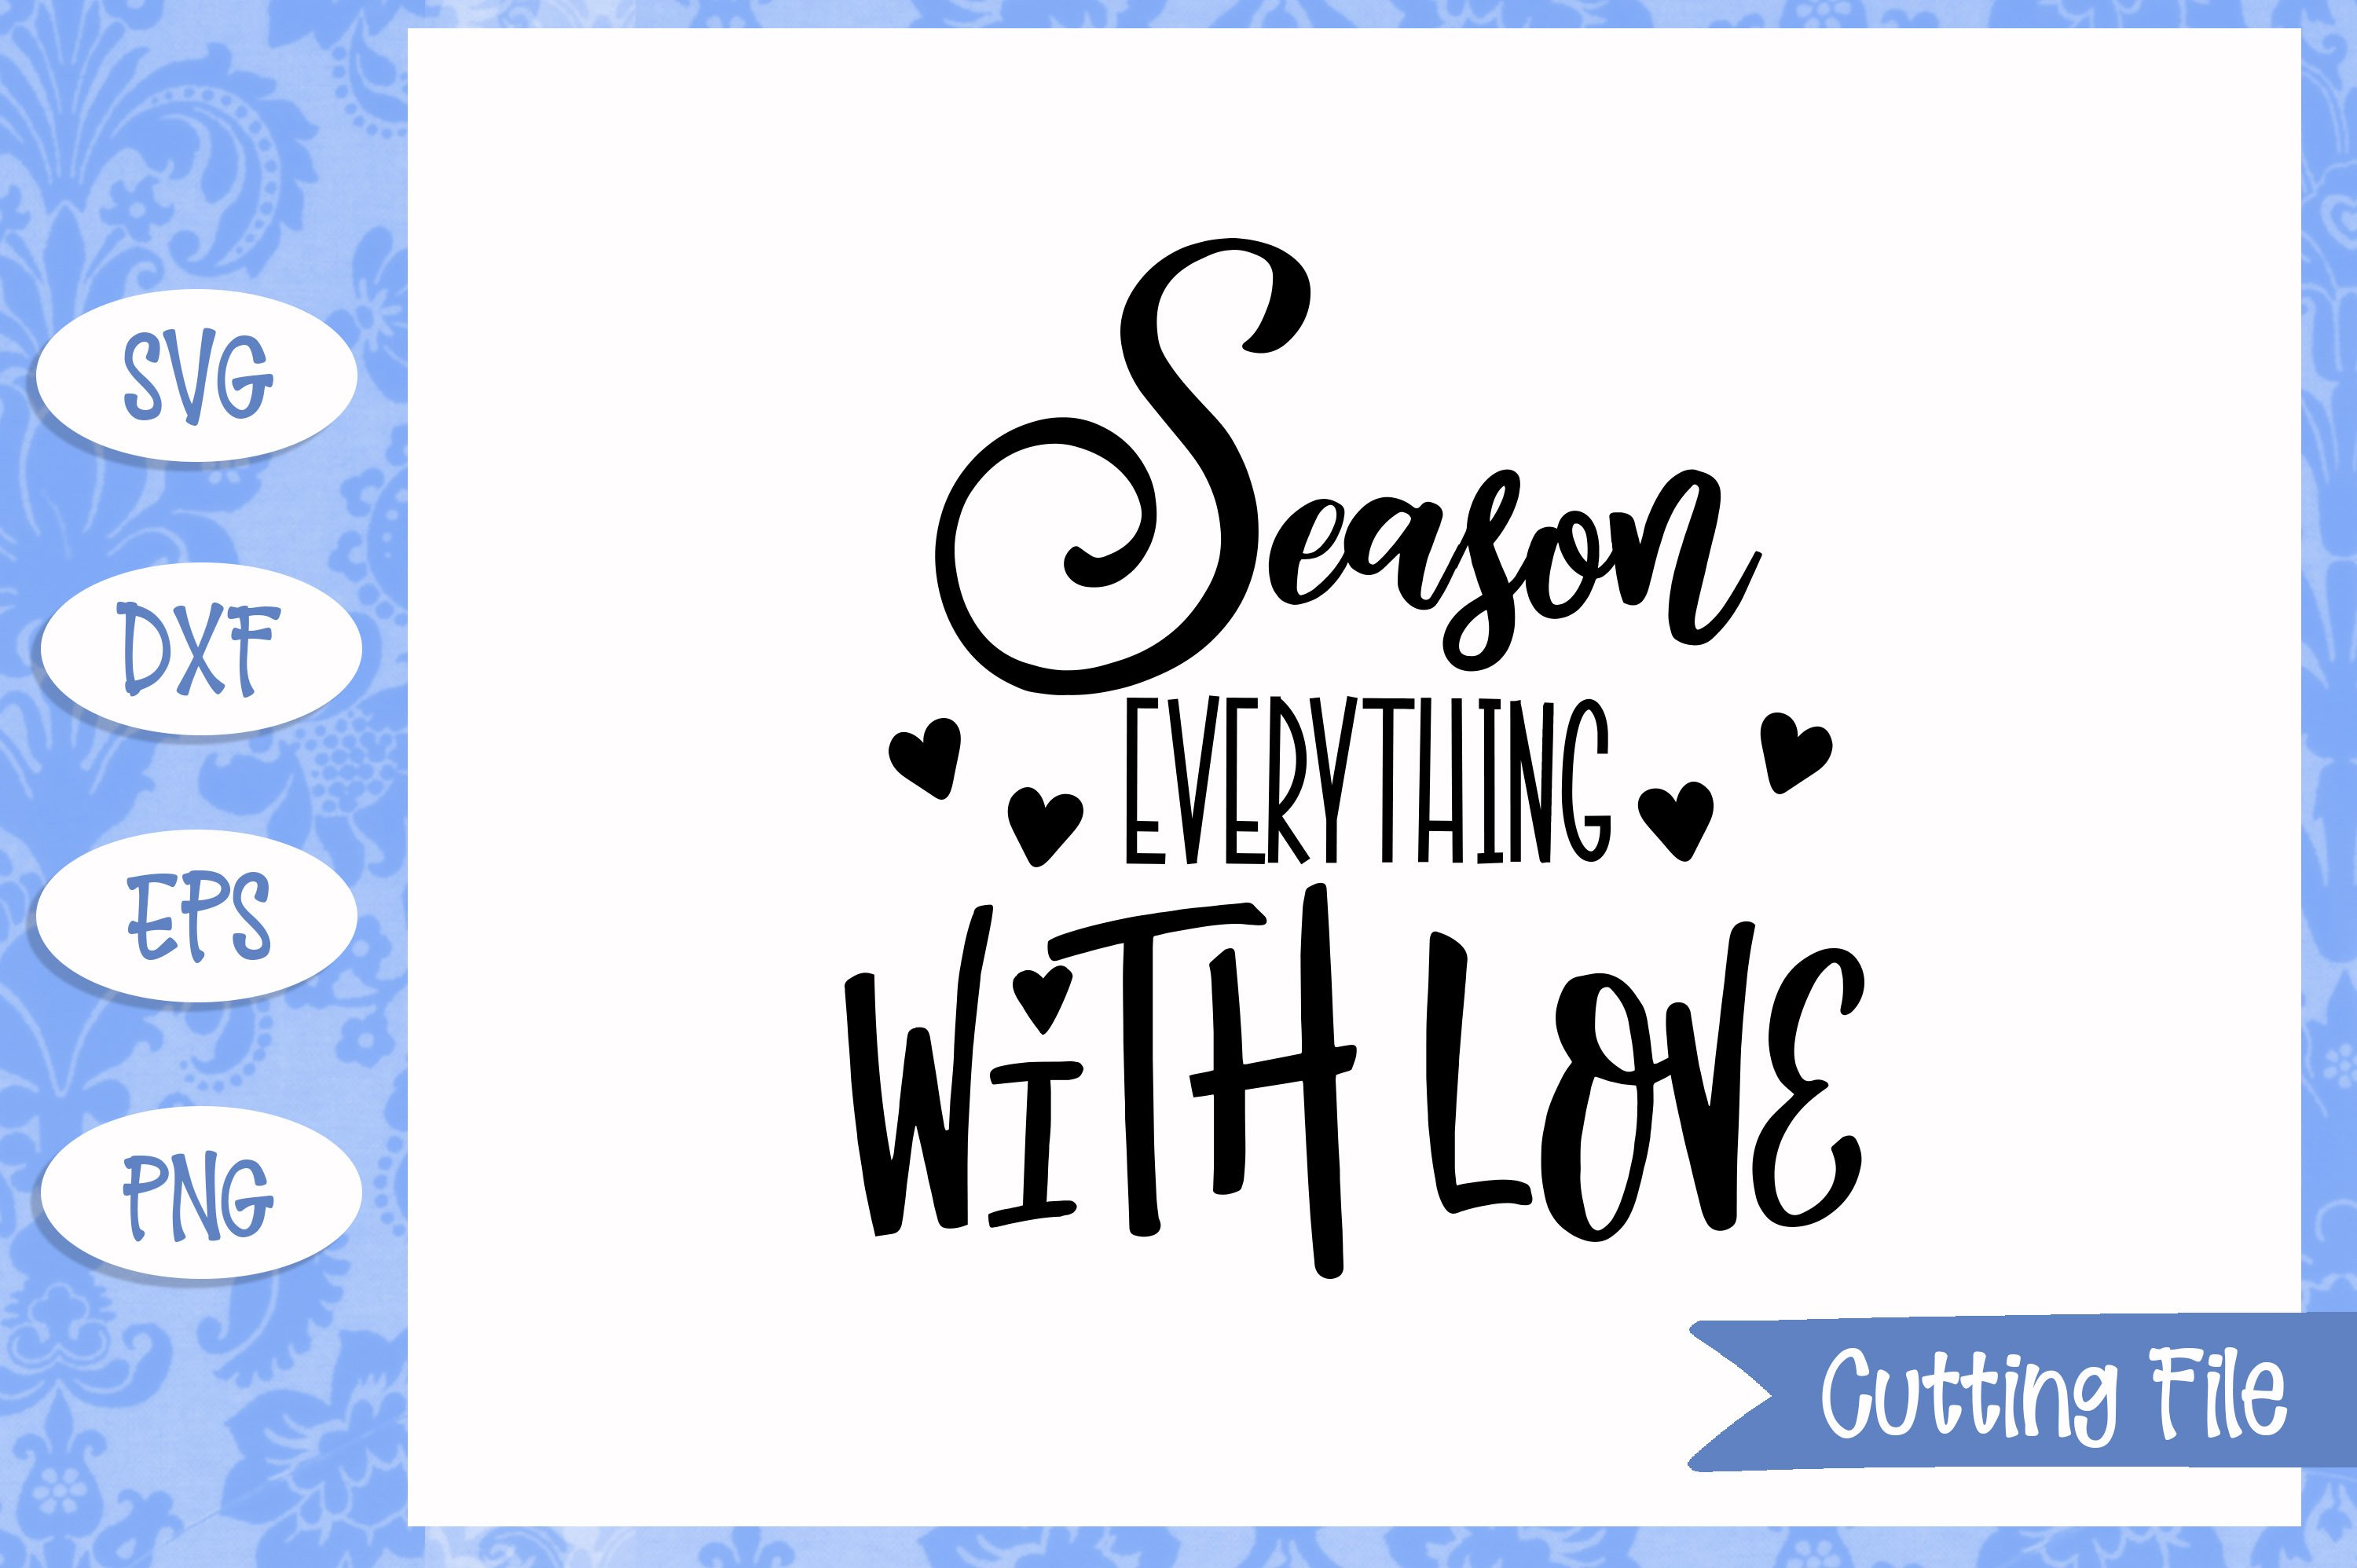 Season everything with love SVG File example image 1